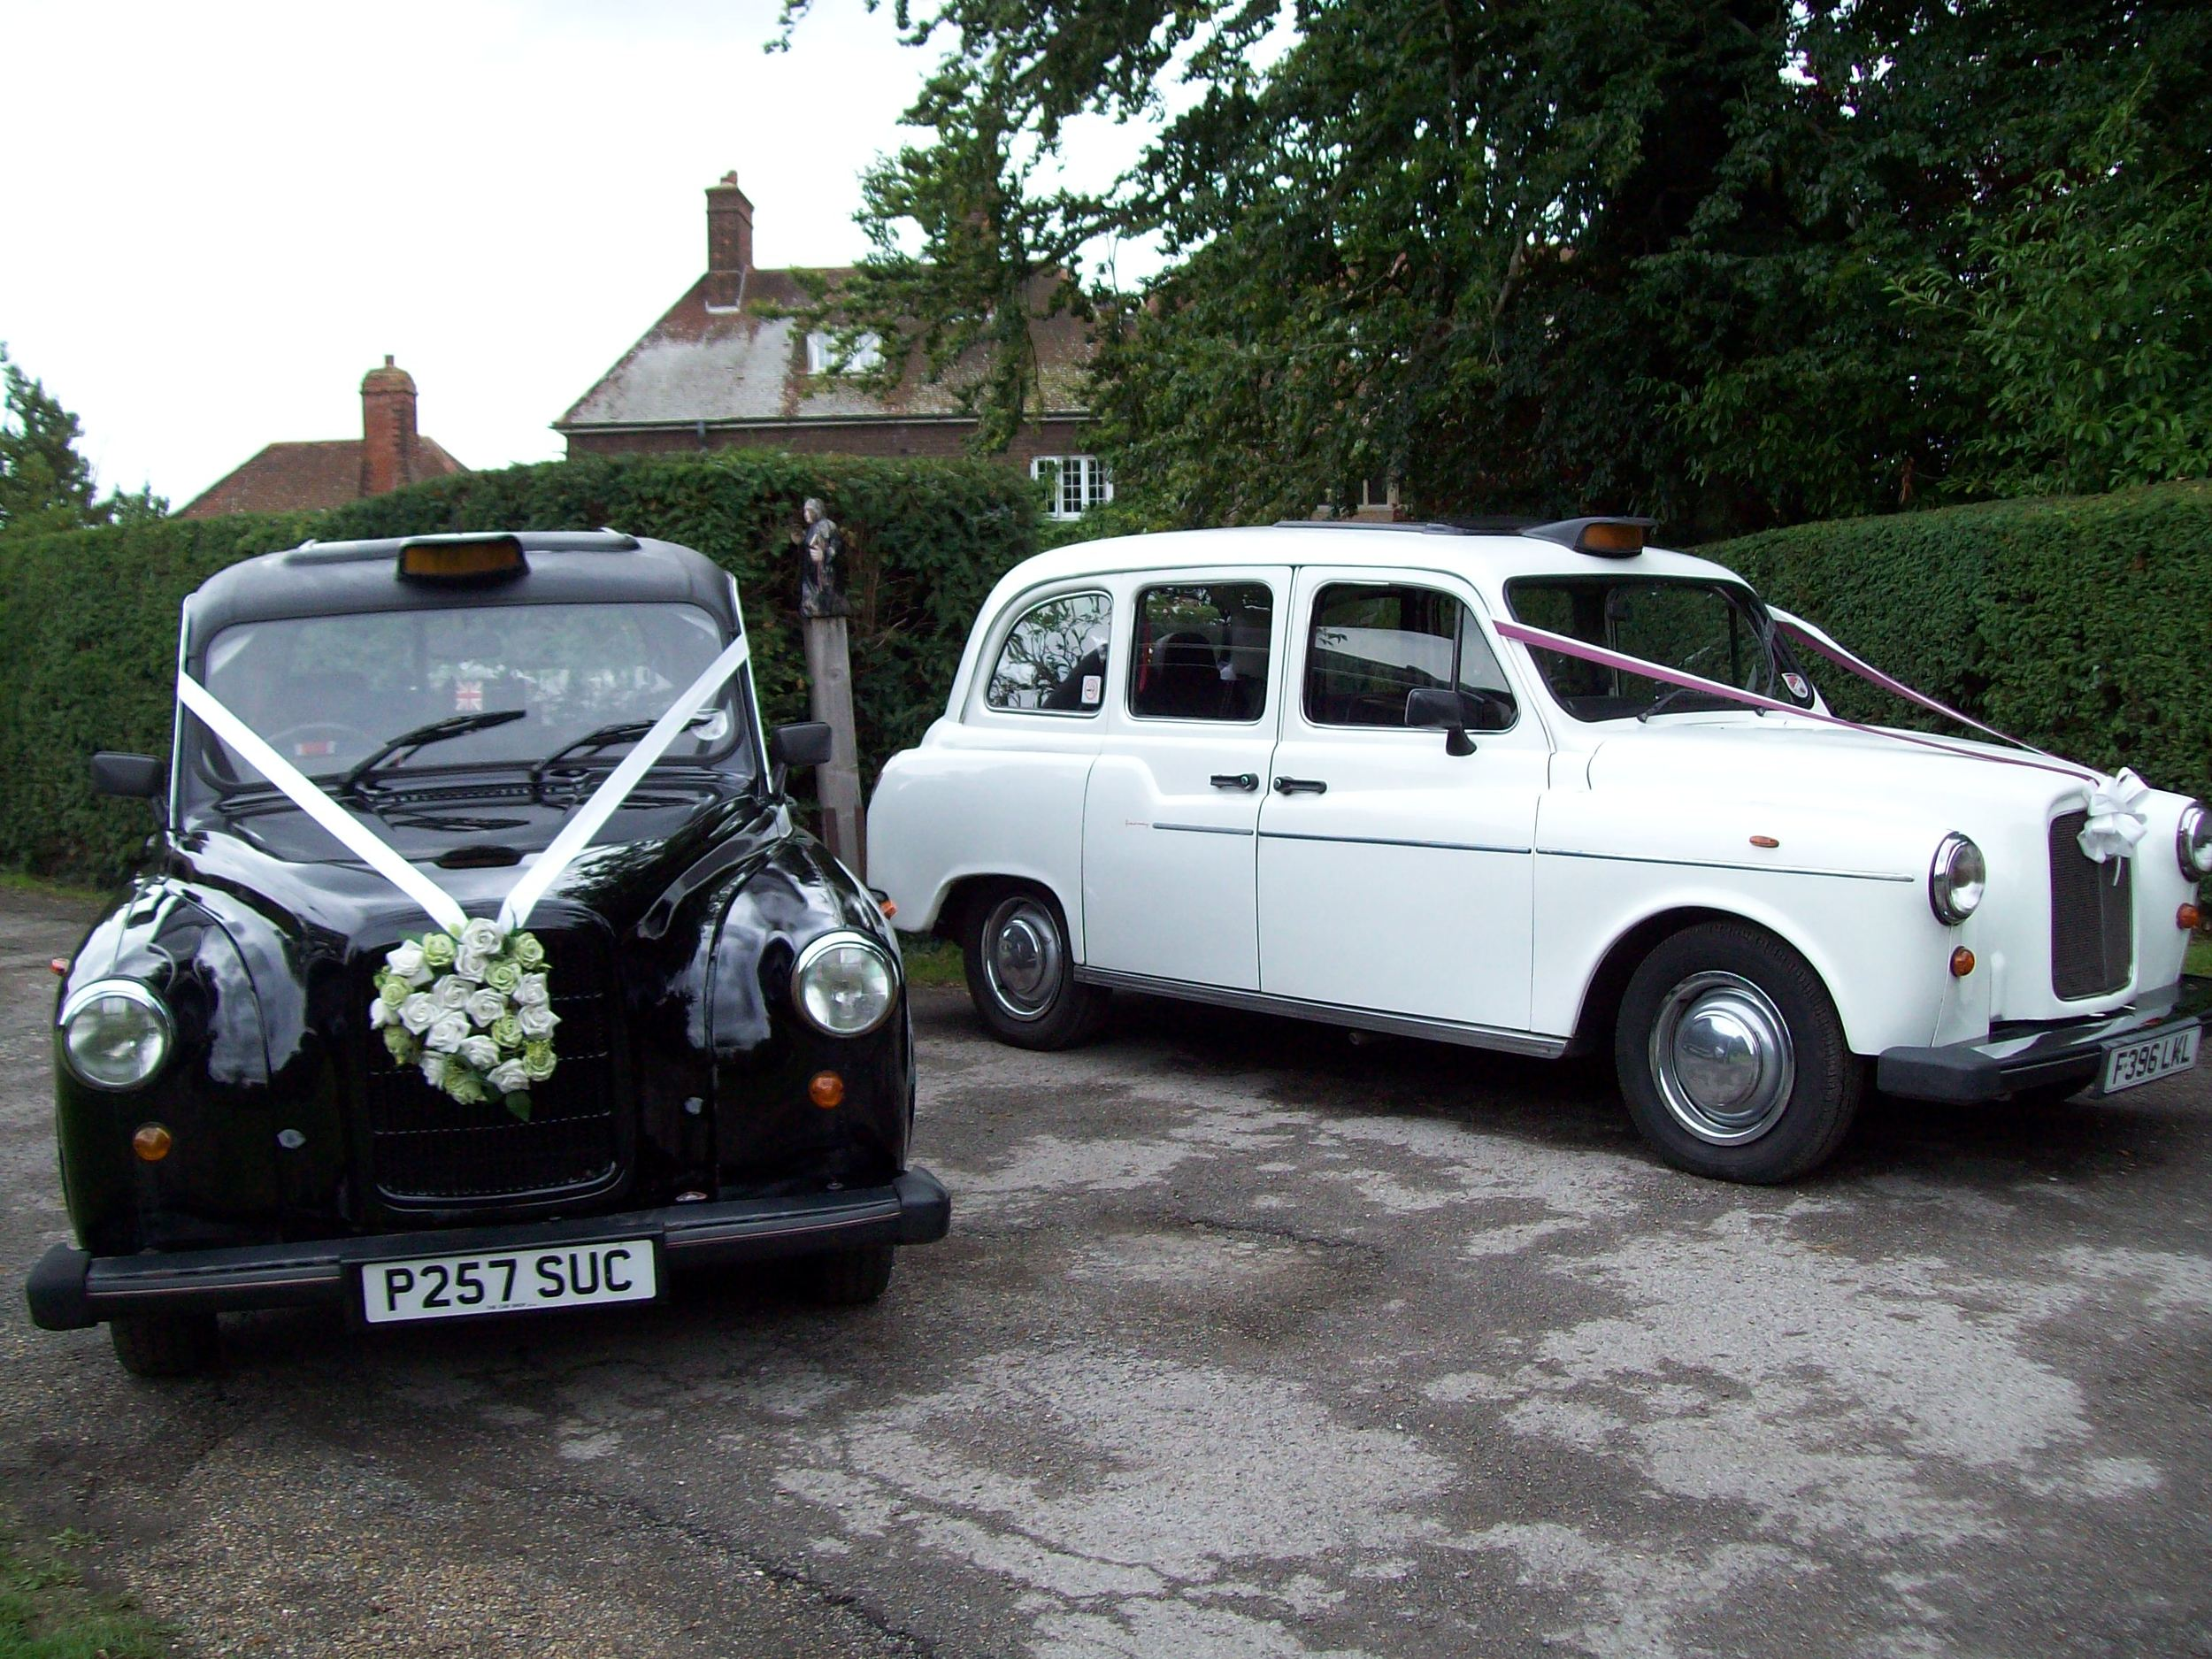 White London Fairway Taxi and black London Fairway Taxi wedding cars available from Kent & Medway Wedding Cars.